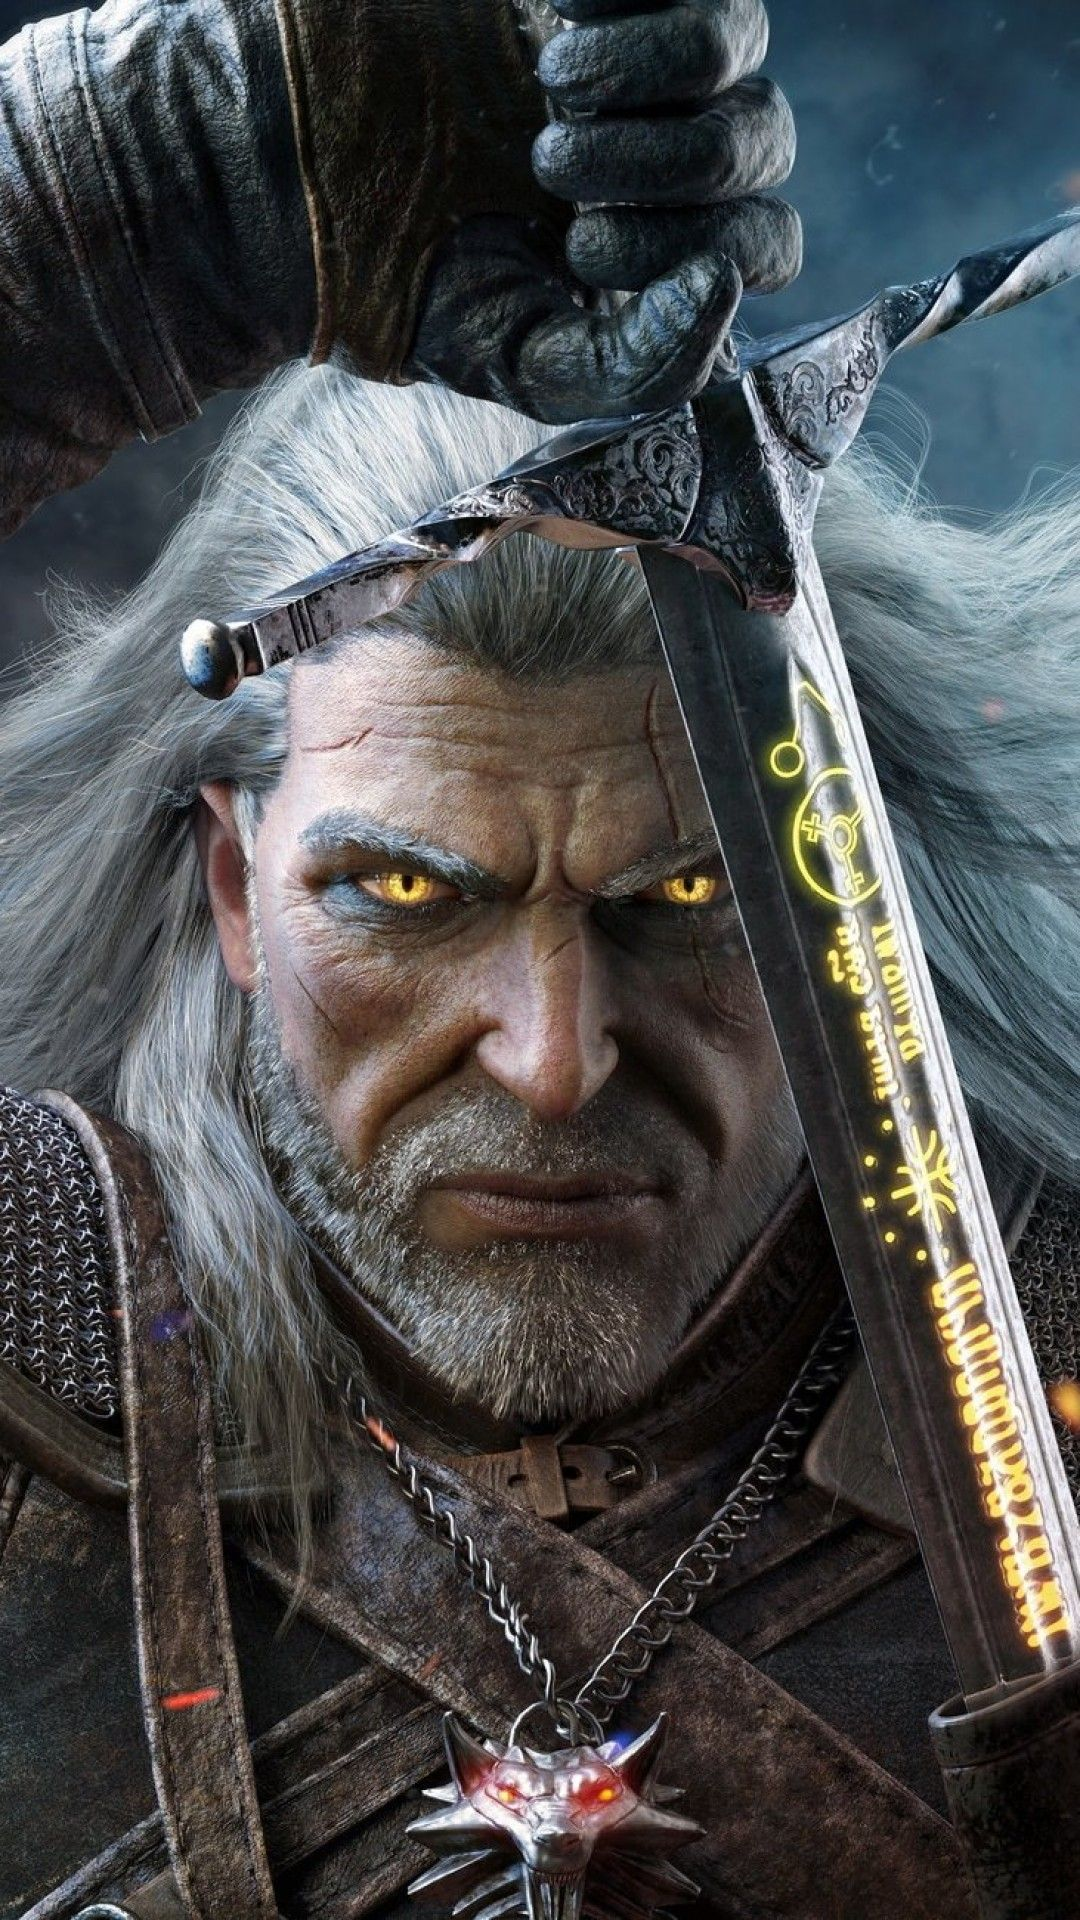 The Witcher 3 Wallpaper Widescreen Hupages Download Iphone Wallpapers The Witcher Geralt Of Rivia The Witcher Geralt